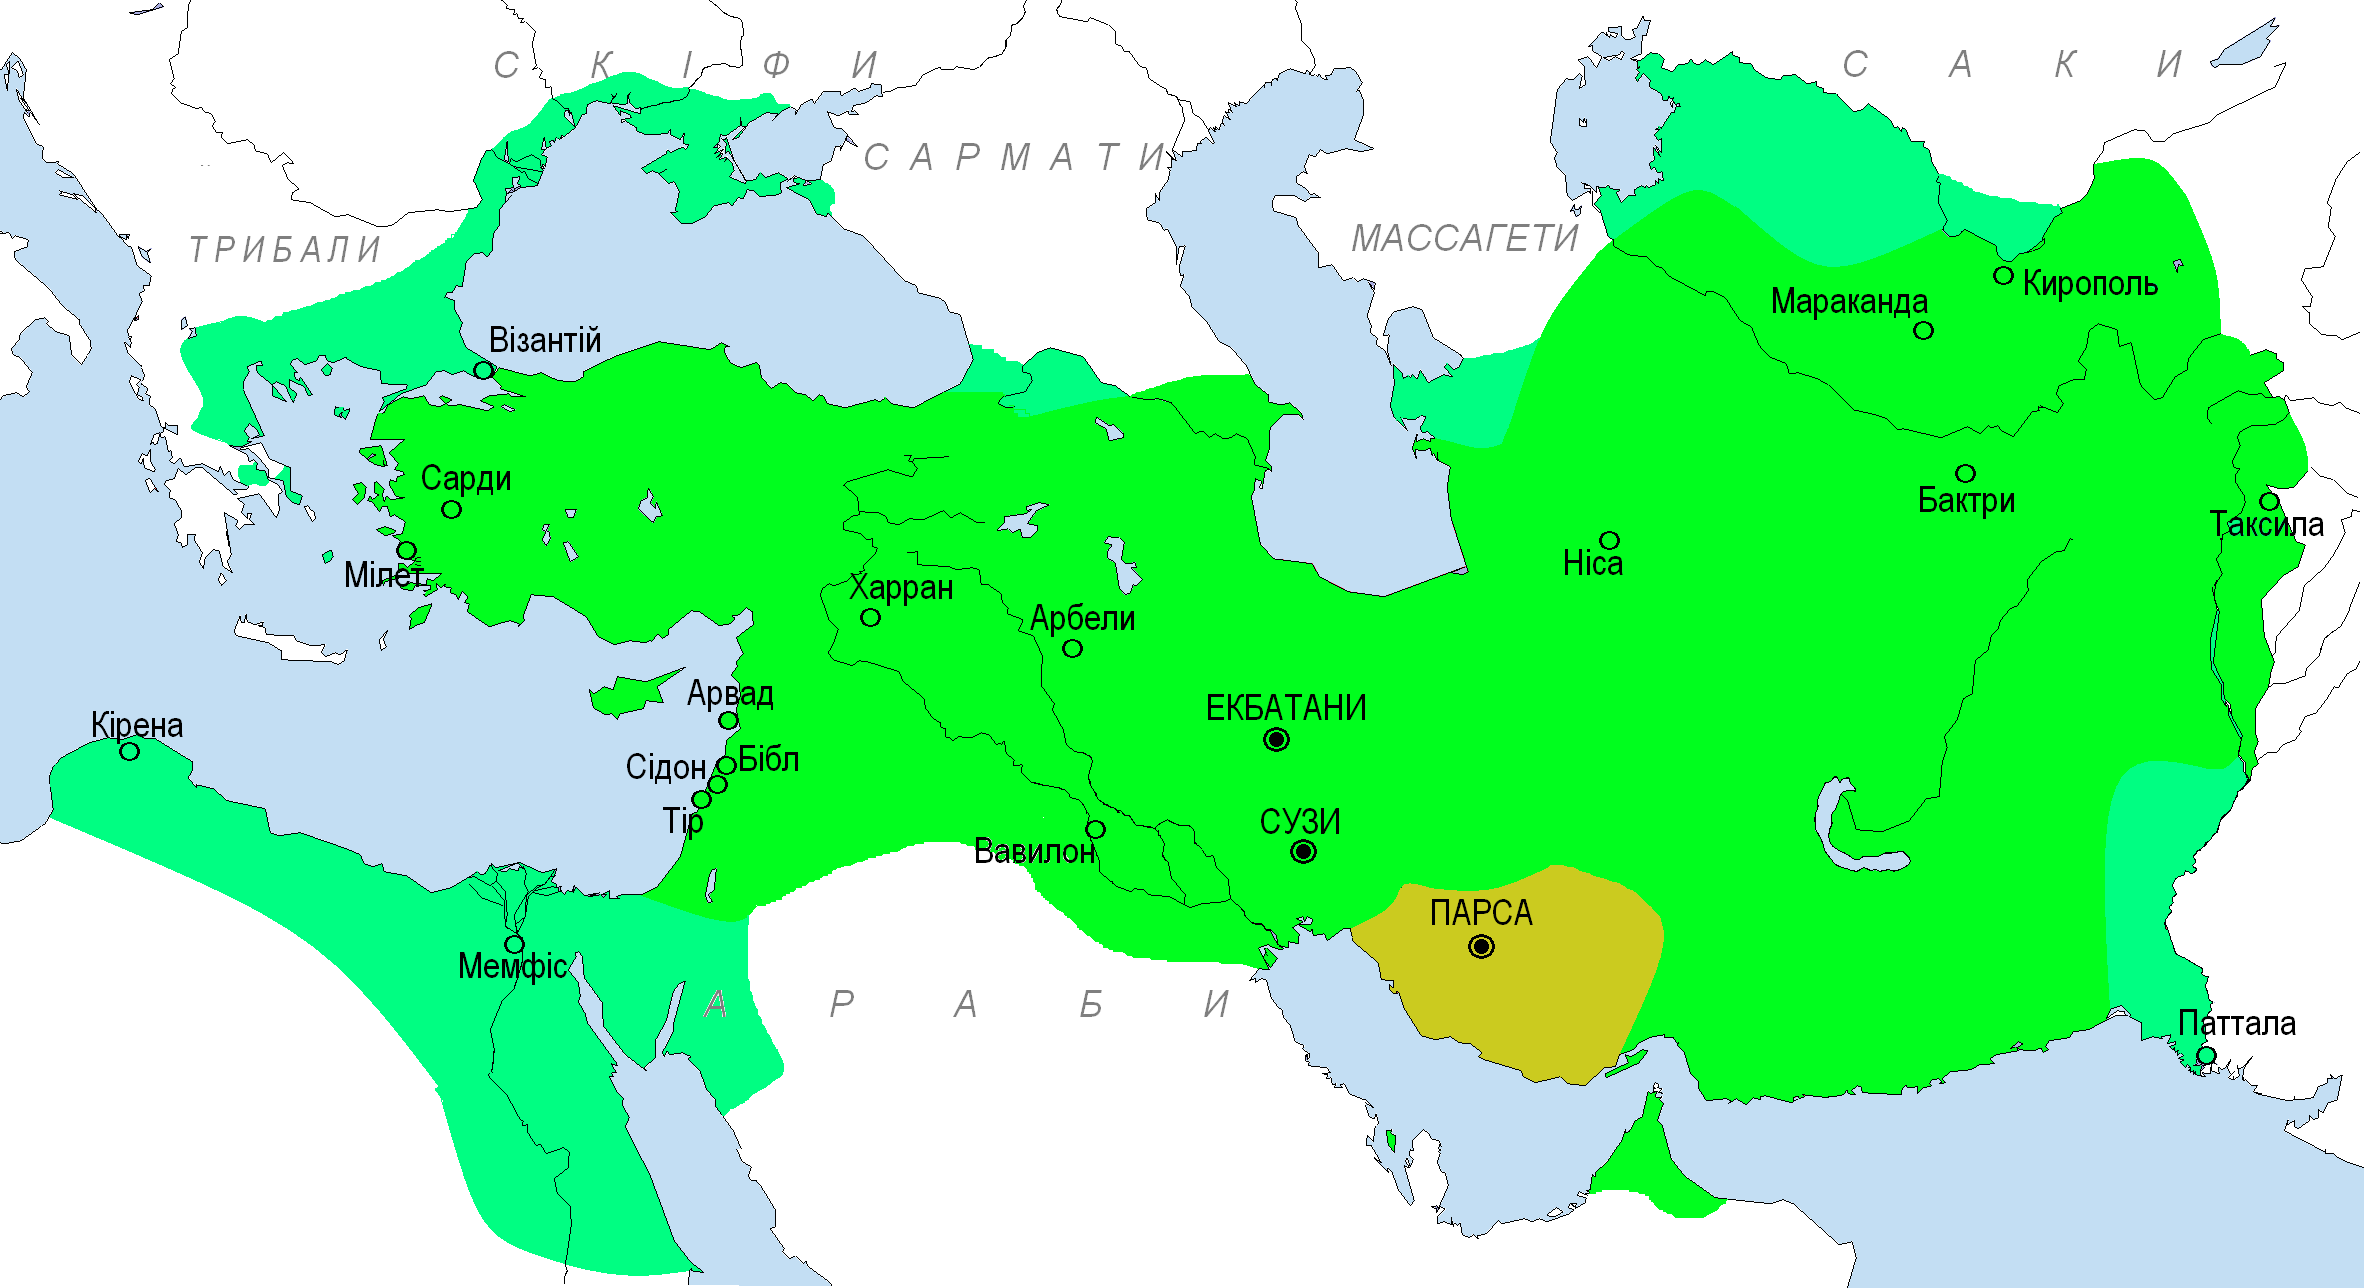 persian empire Persian empire is any of a series of imperial dynasties centered in persia (modern–day iran ) the first of these was the achaemenid empire established by cyrus the great in 550 bc with the conquest of median , lydian and babylonian empires.